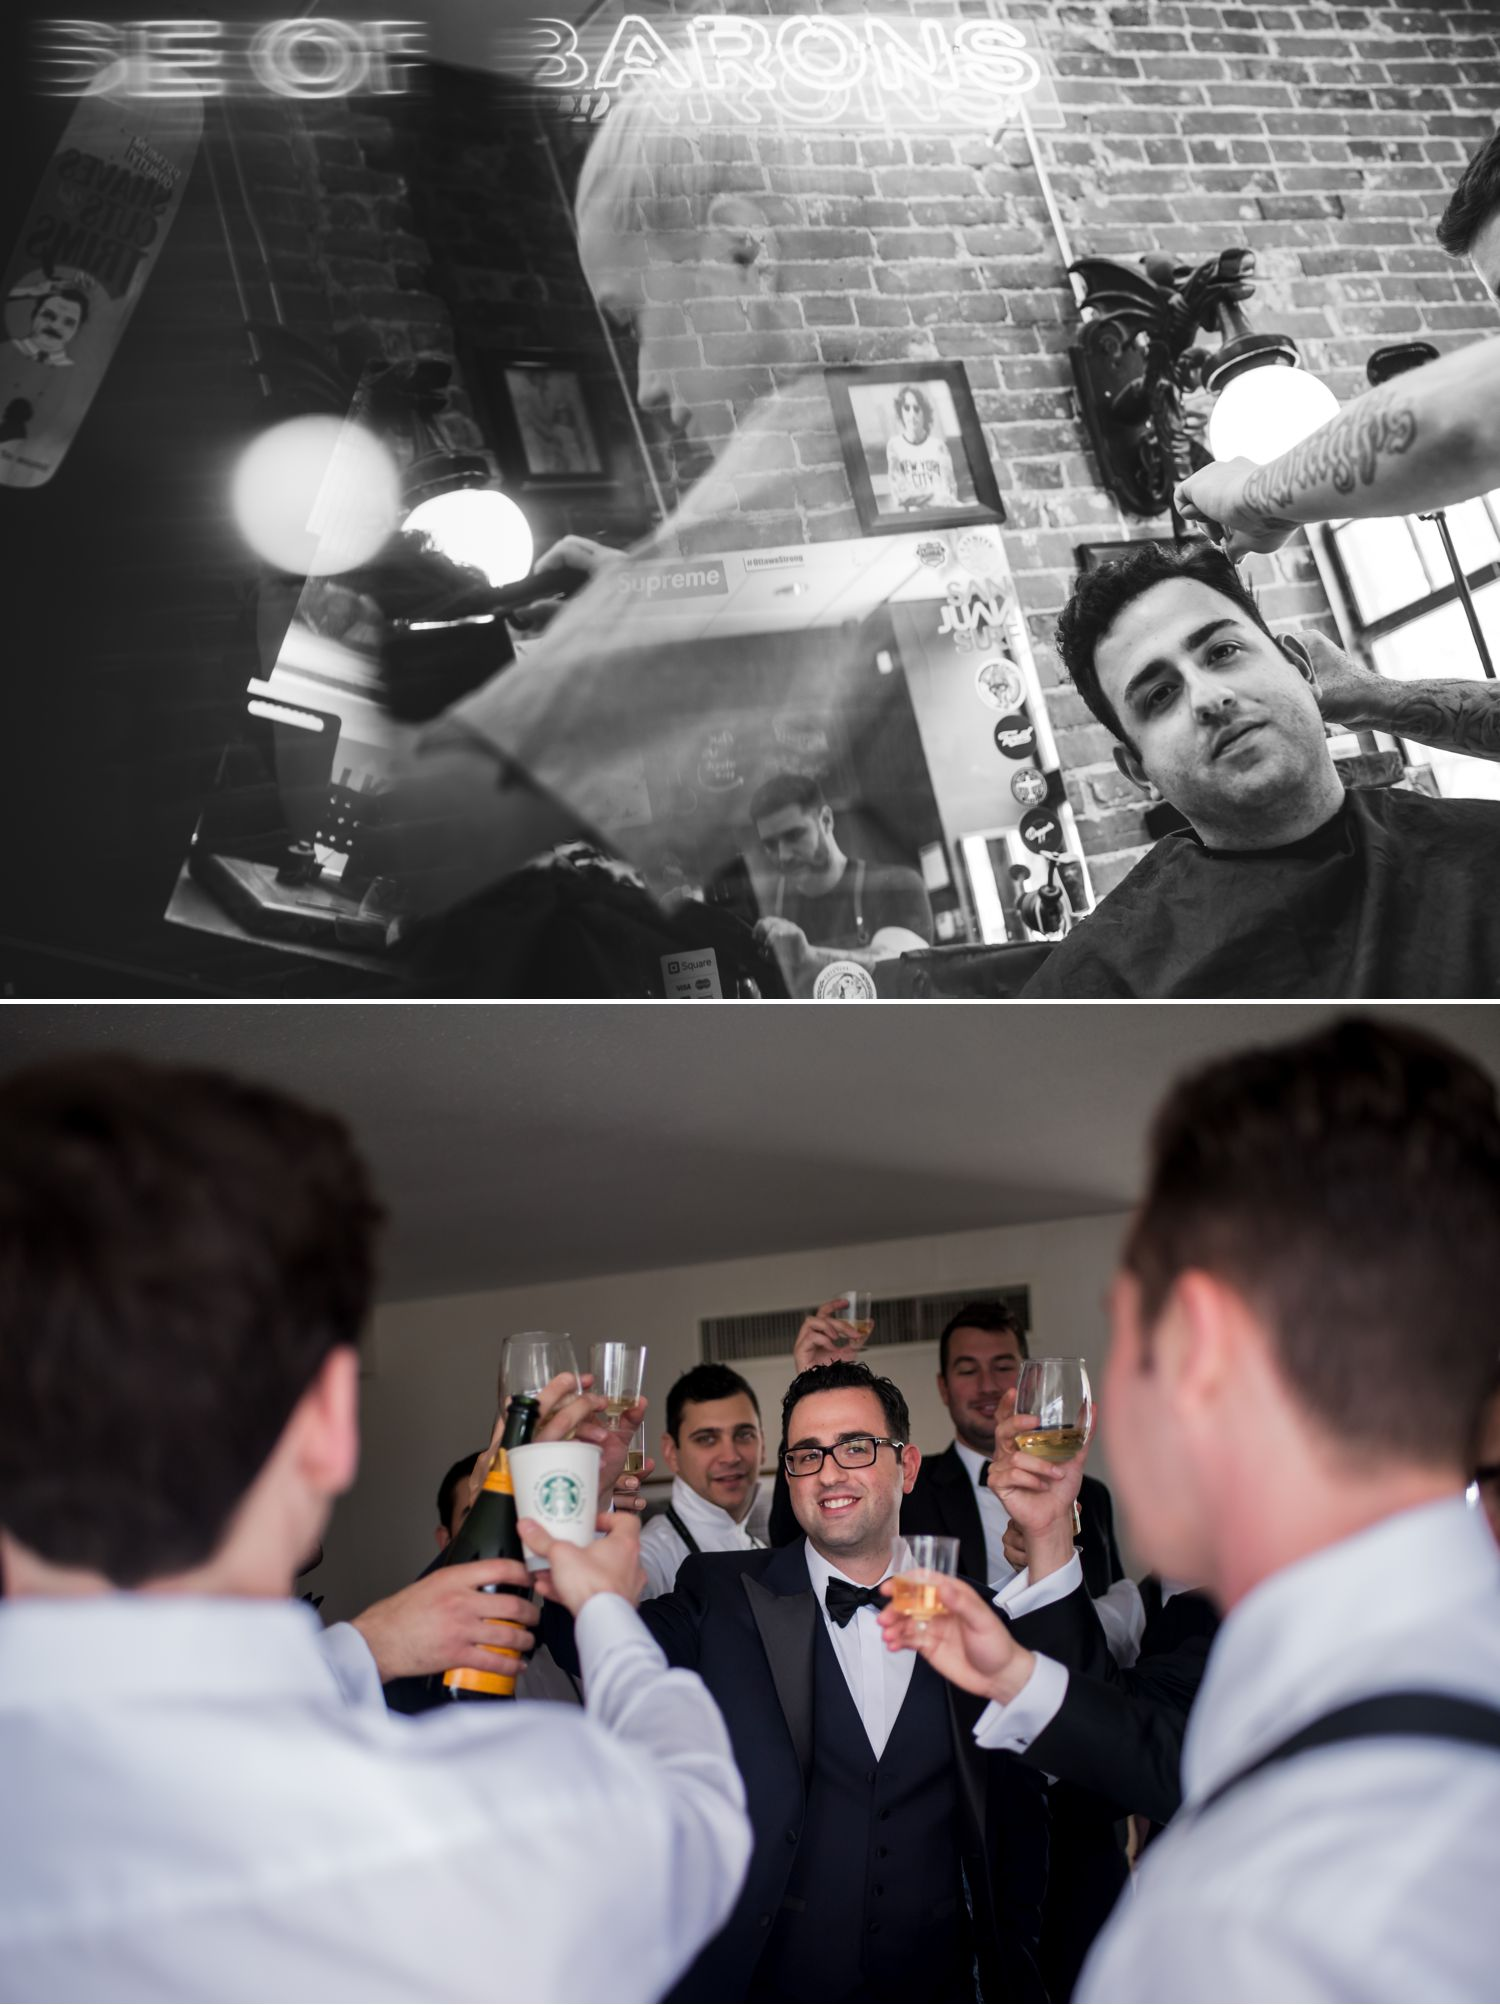 groom getting ready at the house of barons for his chateau laurier wedding in ottawa